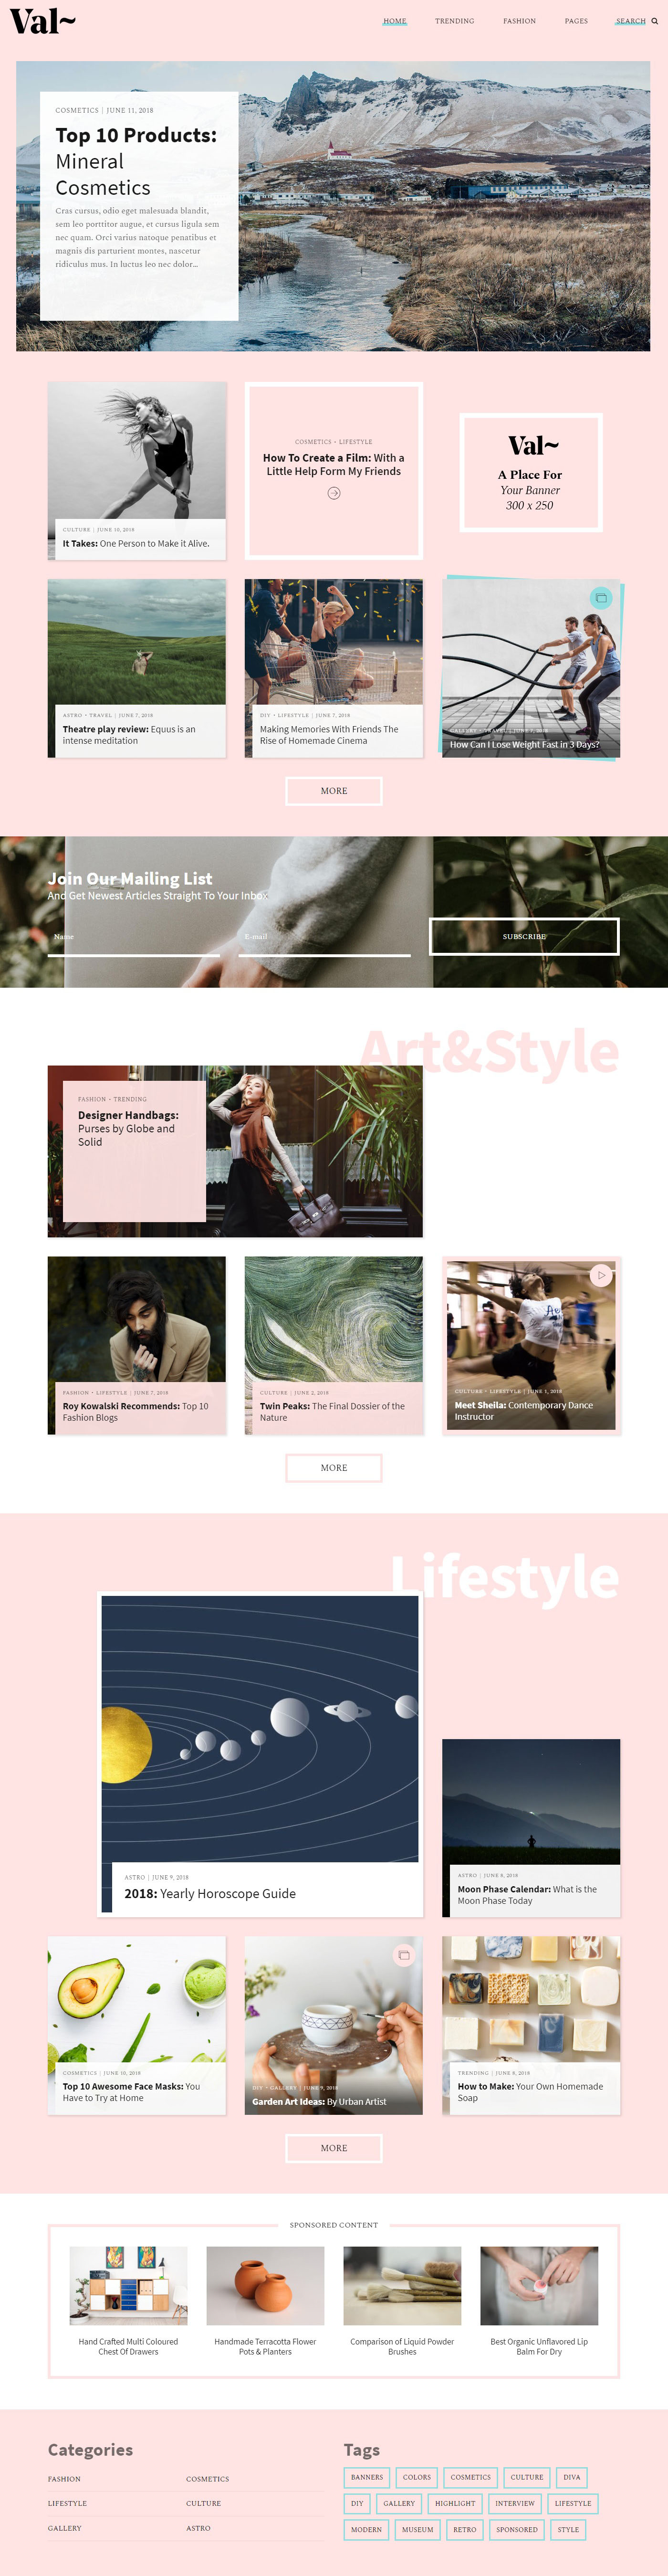 http://val.bold-themes.com/wp-content/uploads/2018/10/Pink-Demo-Wide-Menu.jpg